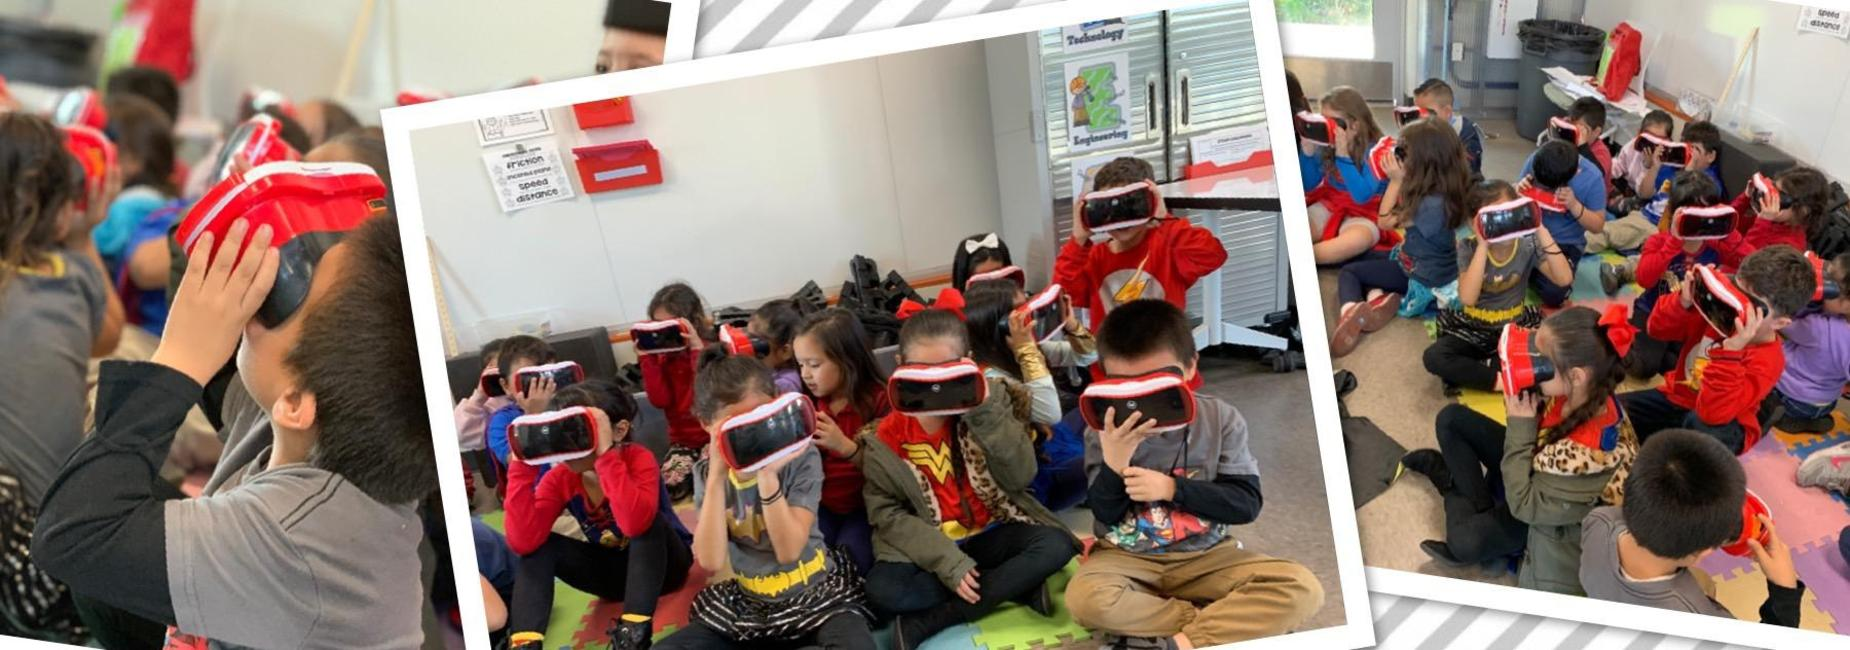 Google Expeditions in the Innovation lab